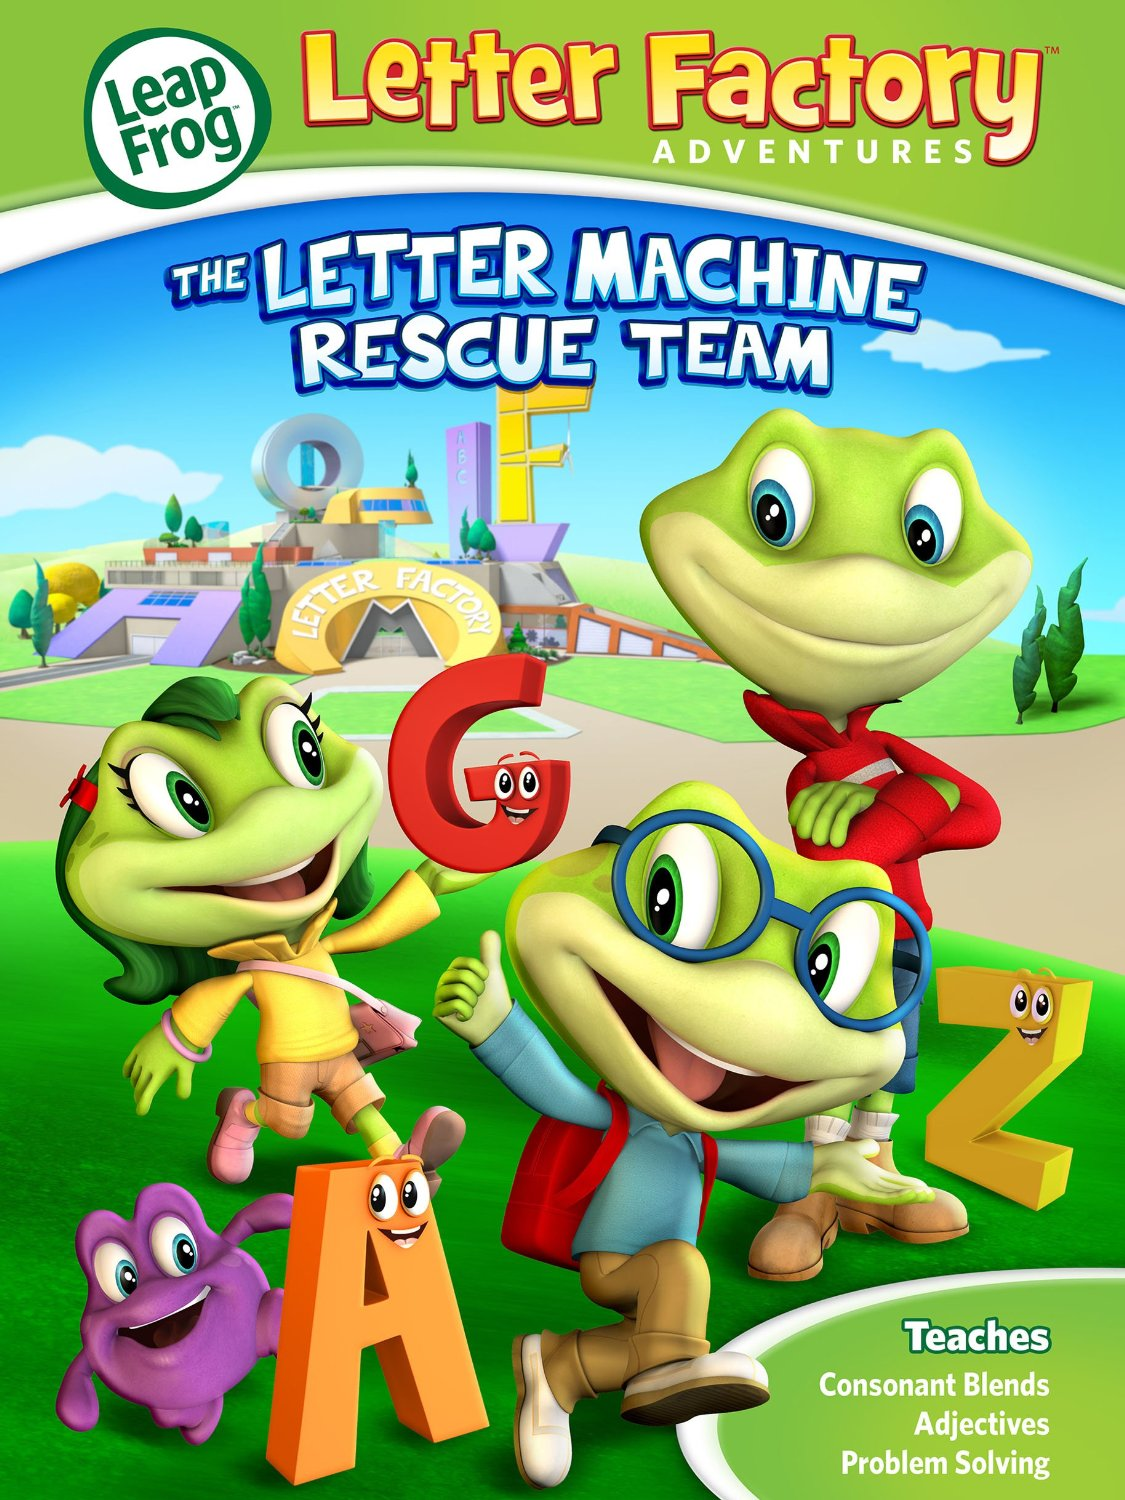 leapfrog letter factory adventures the letter machine rescue team